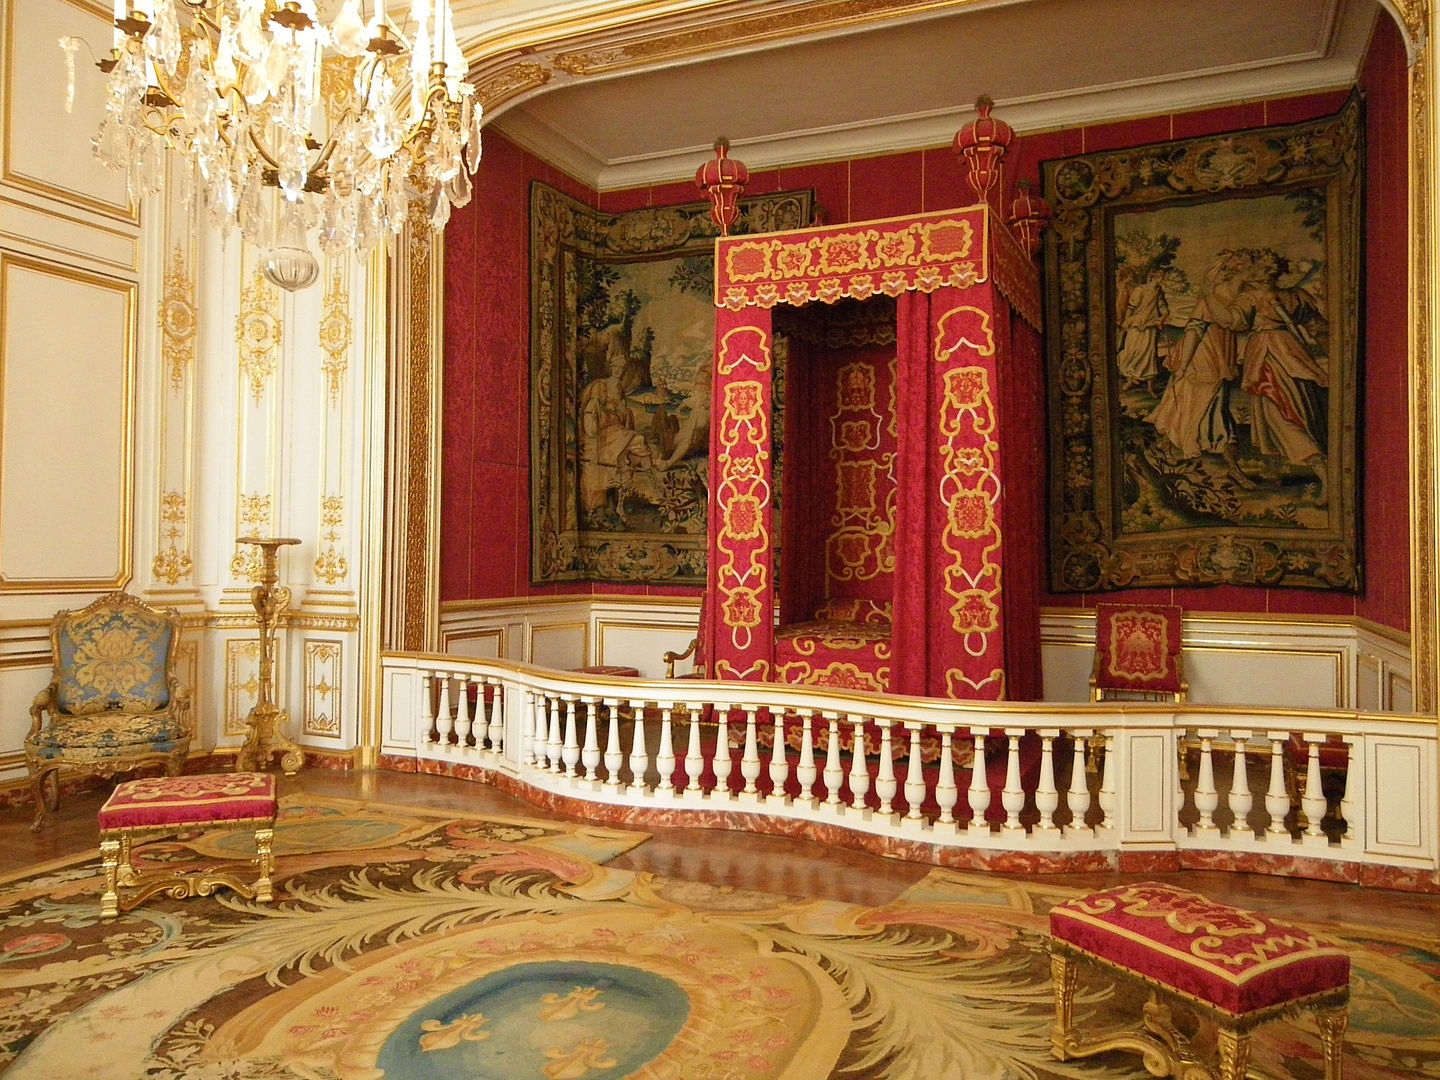 ch teau de chambord un bel int rieur photo et image europe france pays de loire images. Black Bedroom Furniture Sets. Home Design Ideas